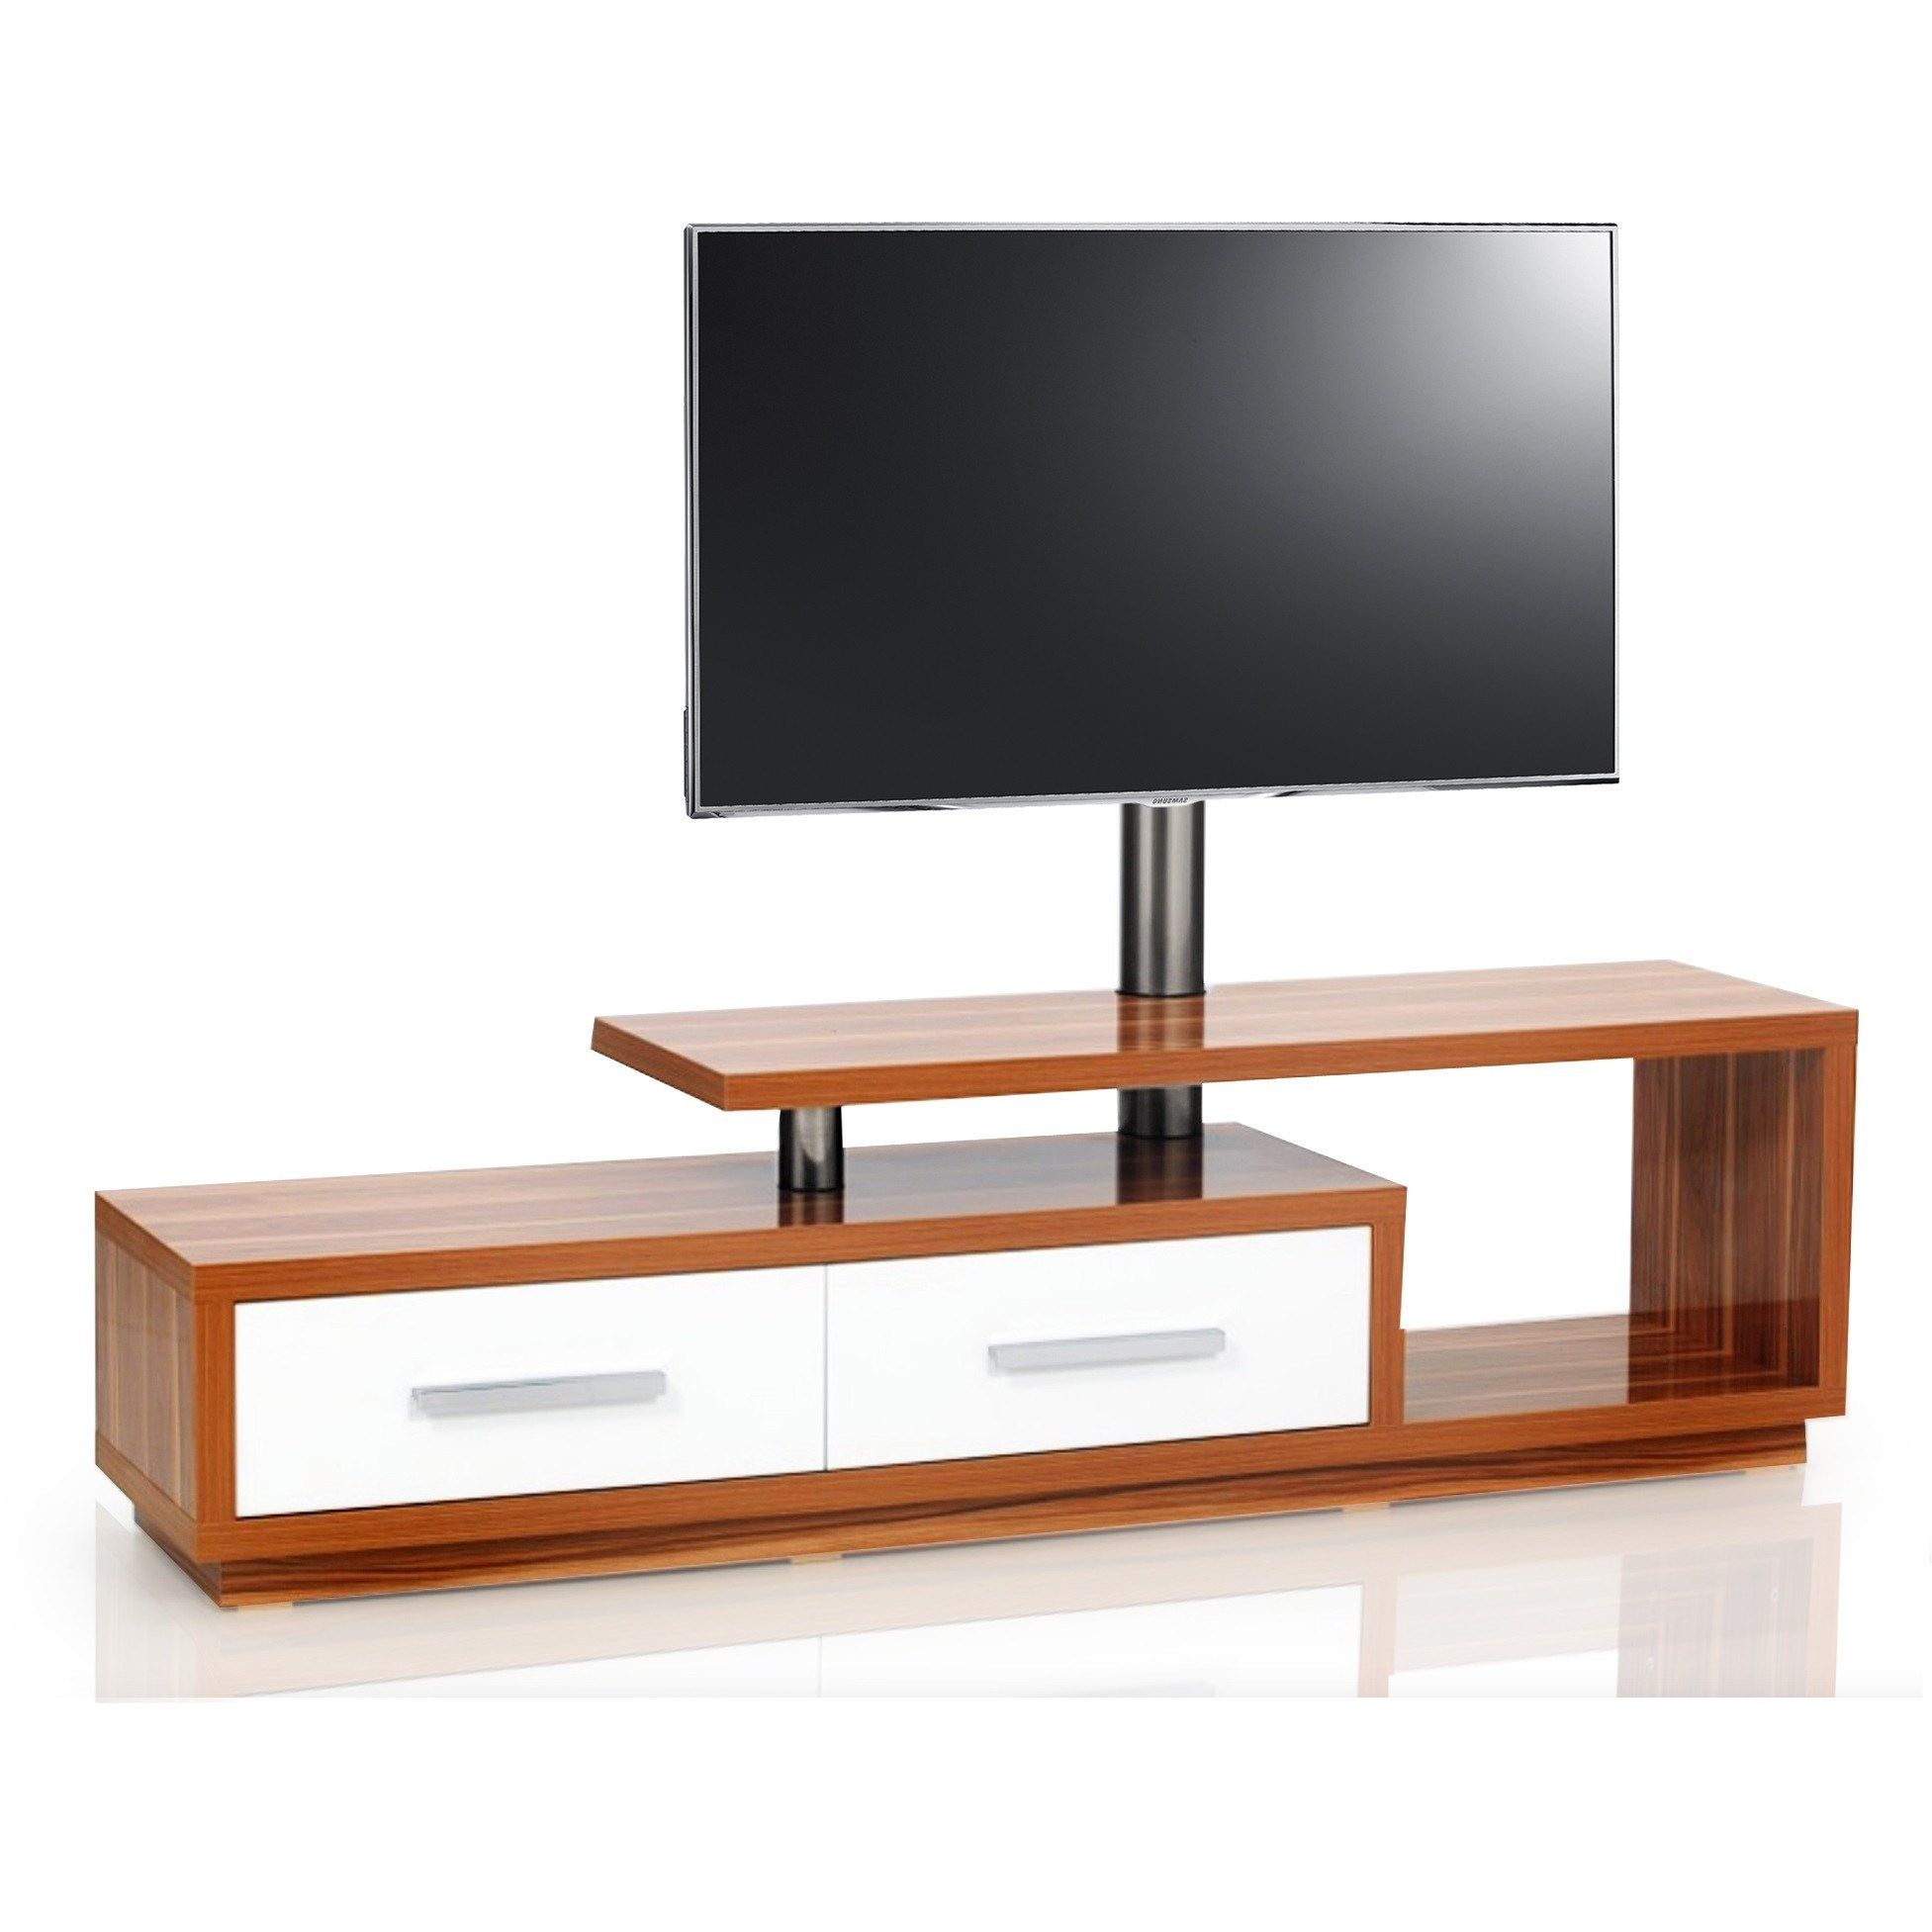 Best Of Television Chez Conforama Television Tables